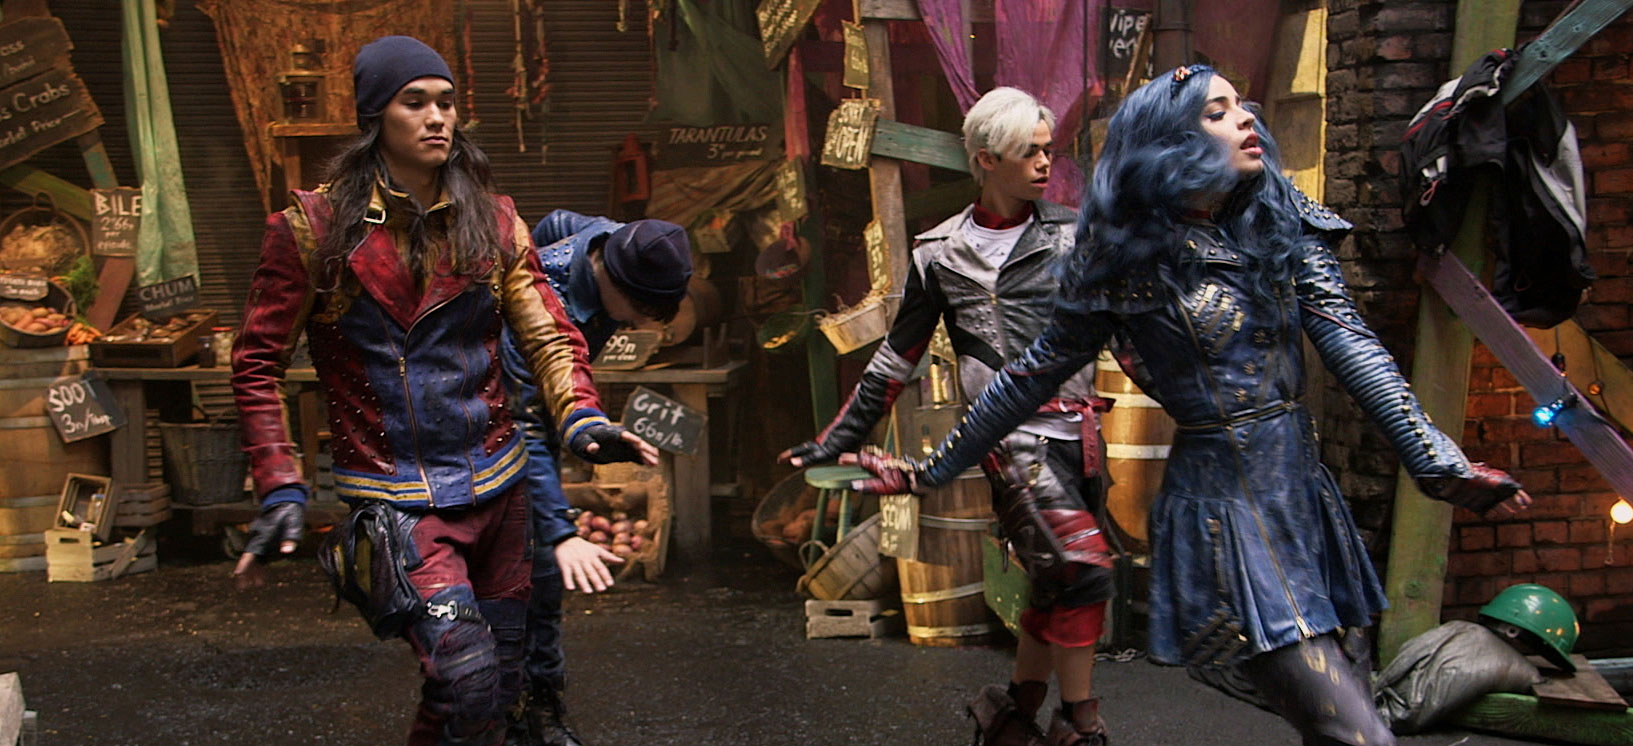 China mcclain breaking news and photos just jared jr page 5 - Disney Channel Shares Descendants 2 First Behind The Scenes Photos